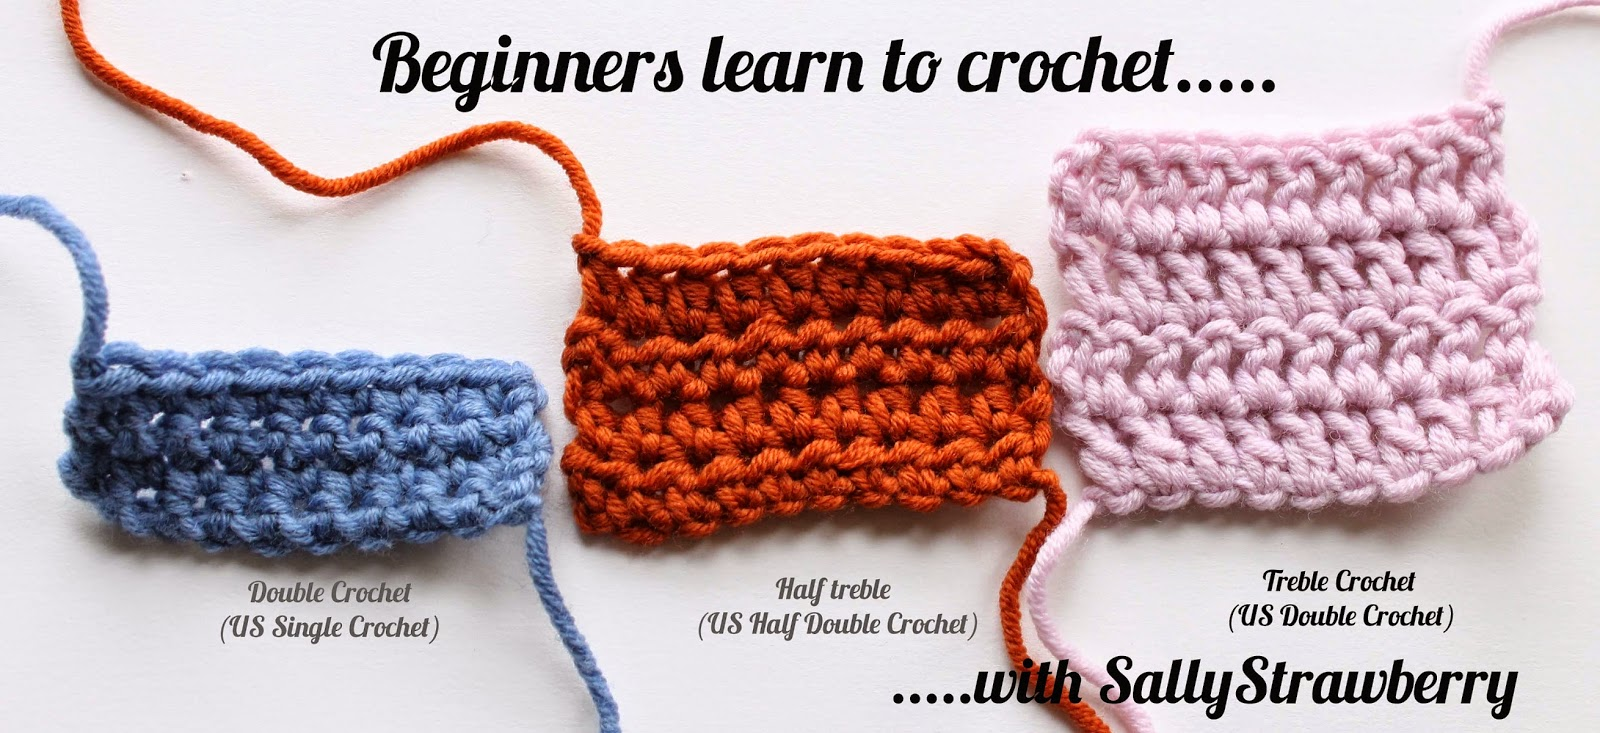 Crocheting Uk : Beginners+Learn+to+Crochet-+treble+Crochet+title+page.jpg